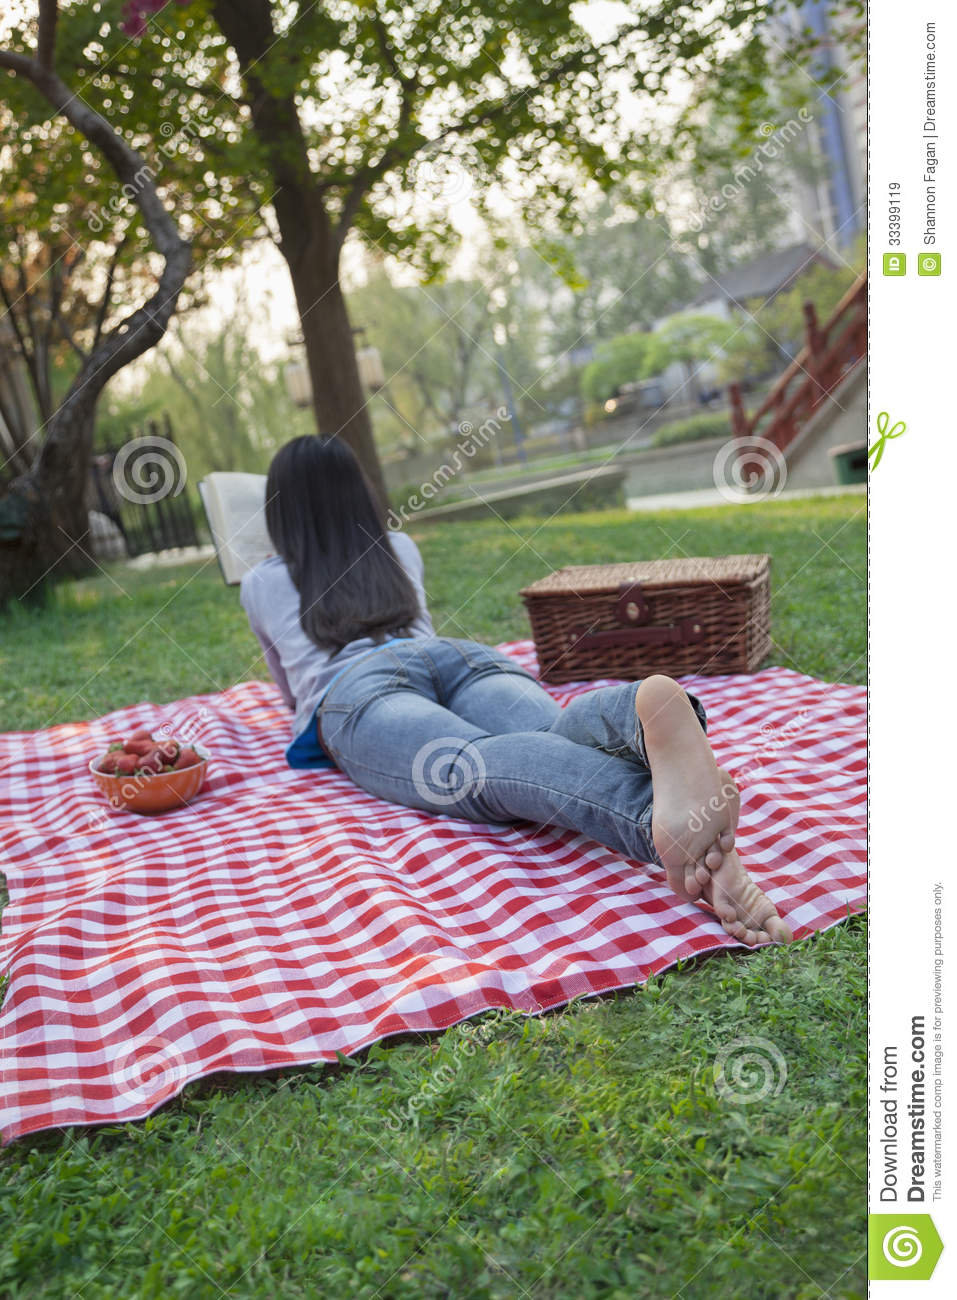 Young Woman Lying On Her Stomach On A Checkered Blanket